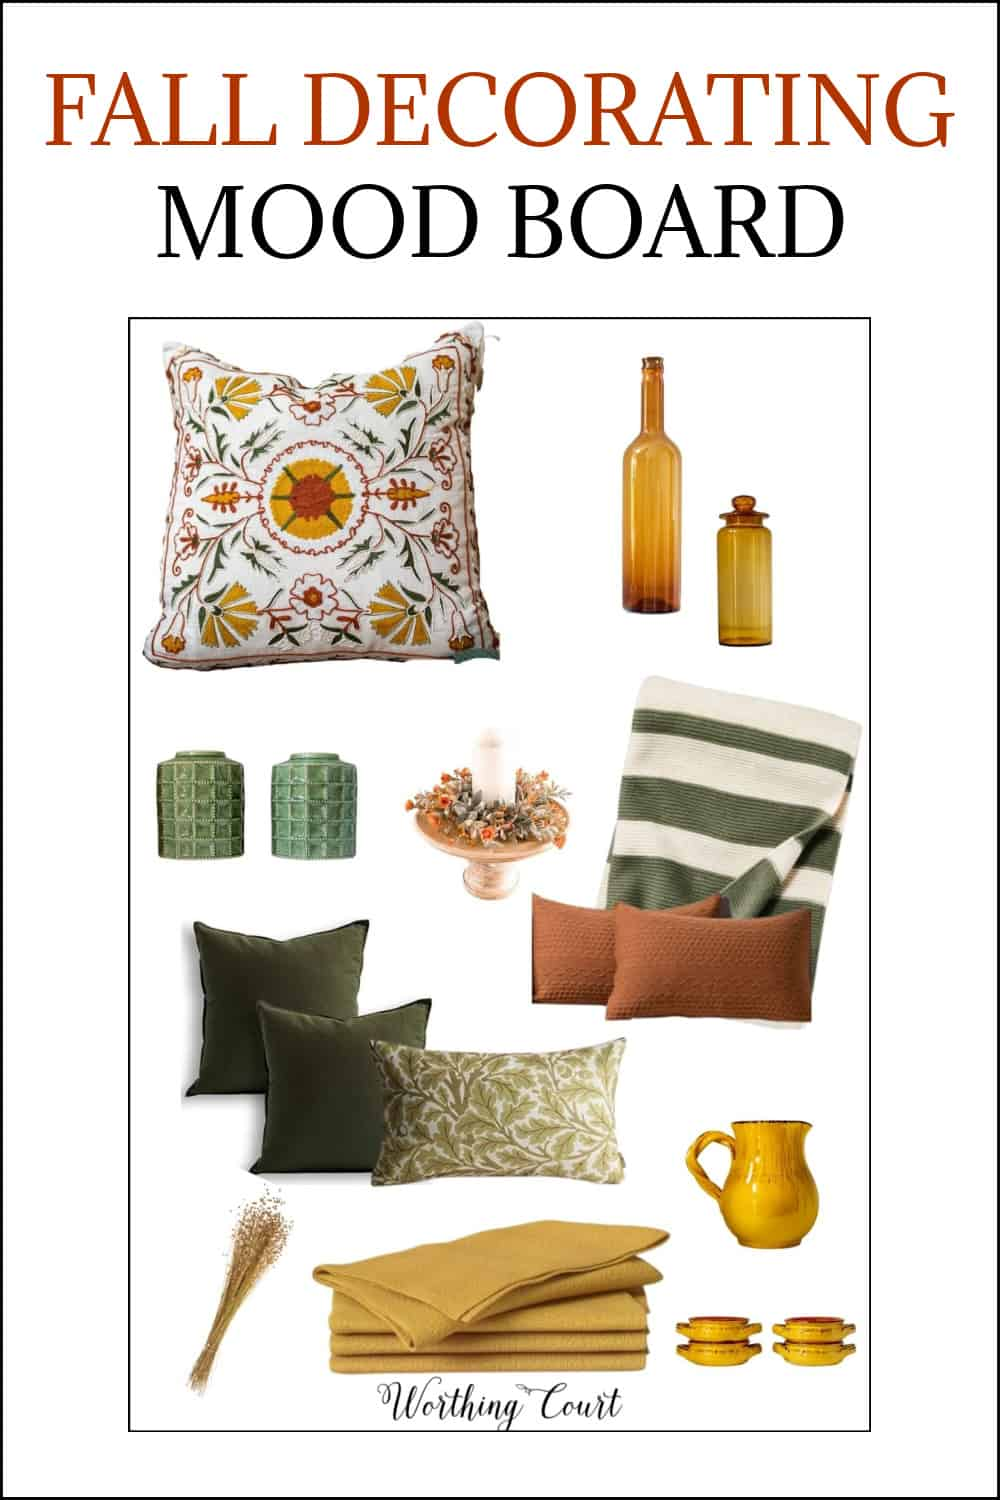 Pinterest image of mood board with fall decor